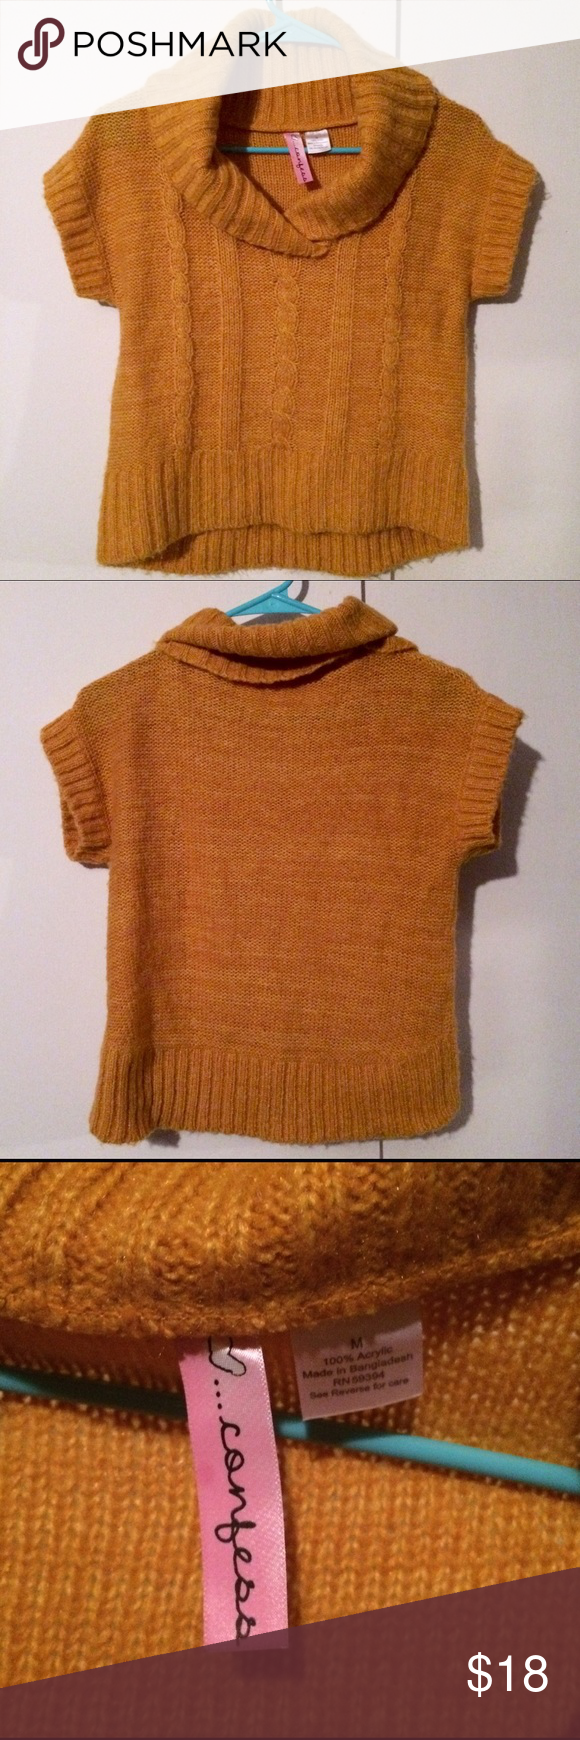 Mustard Gold Yellow Crop Sweater Top Cowl Neck | Cowl neck ...